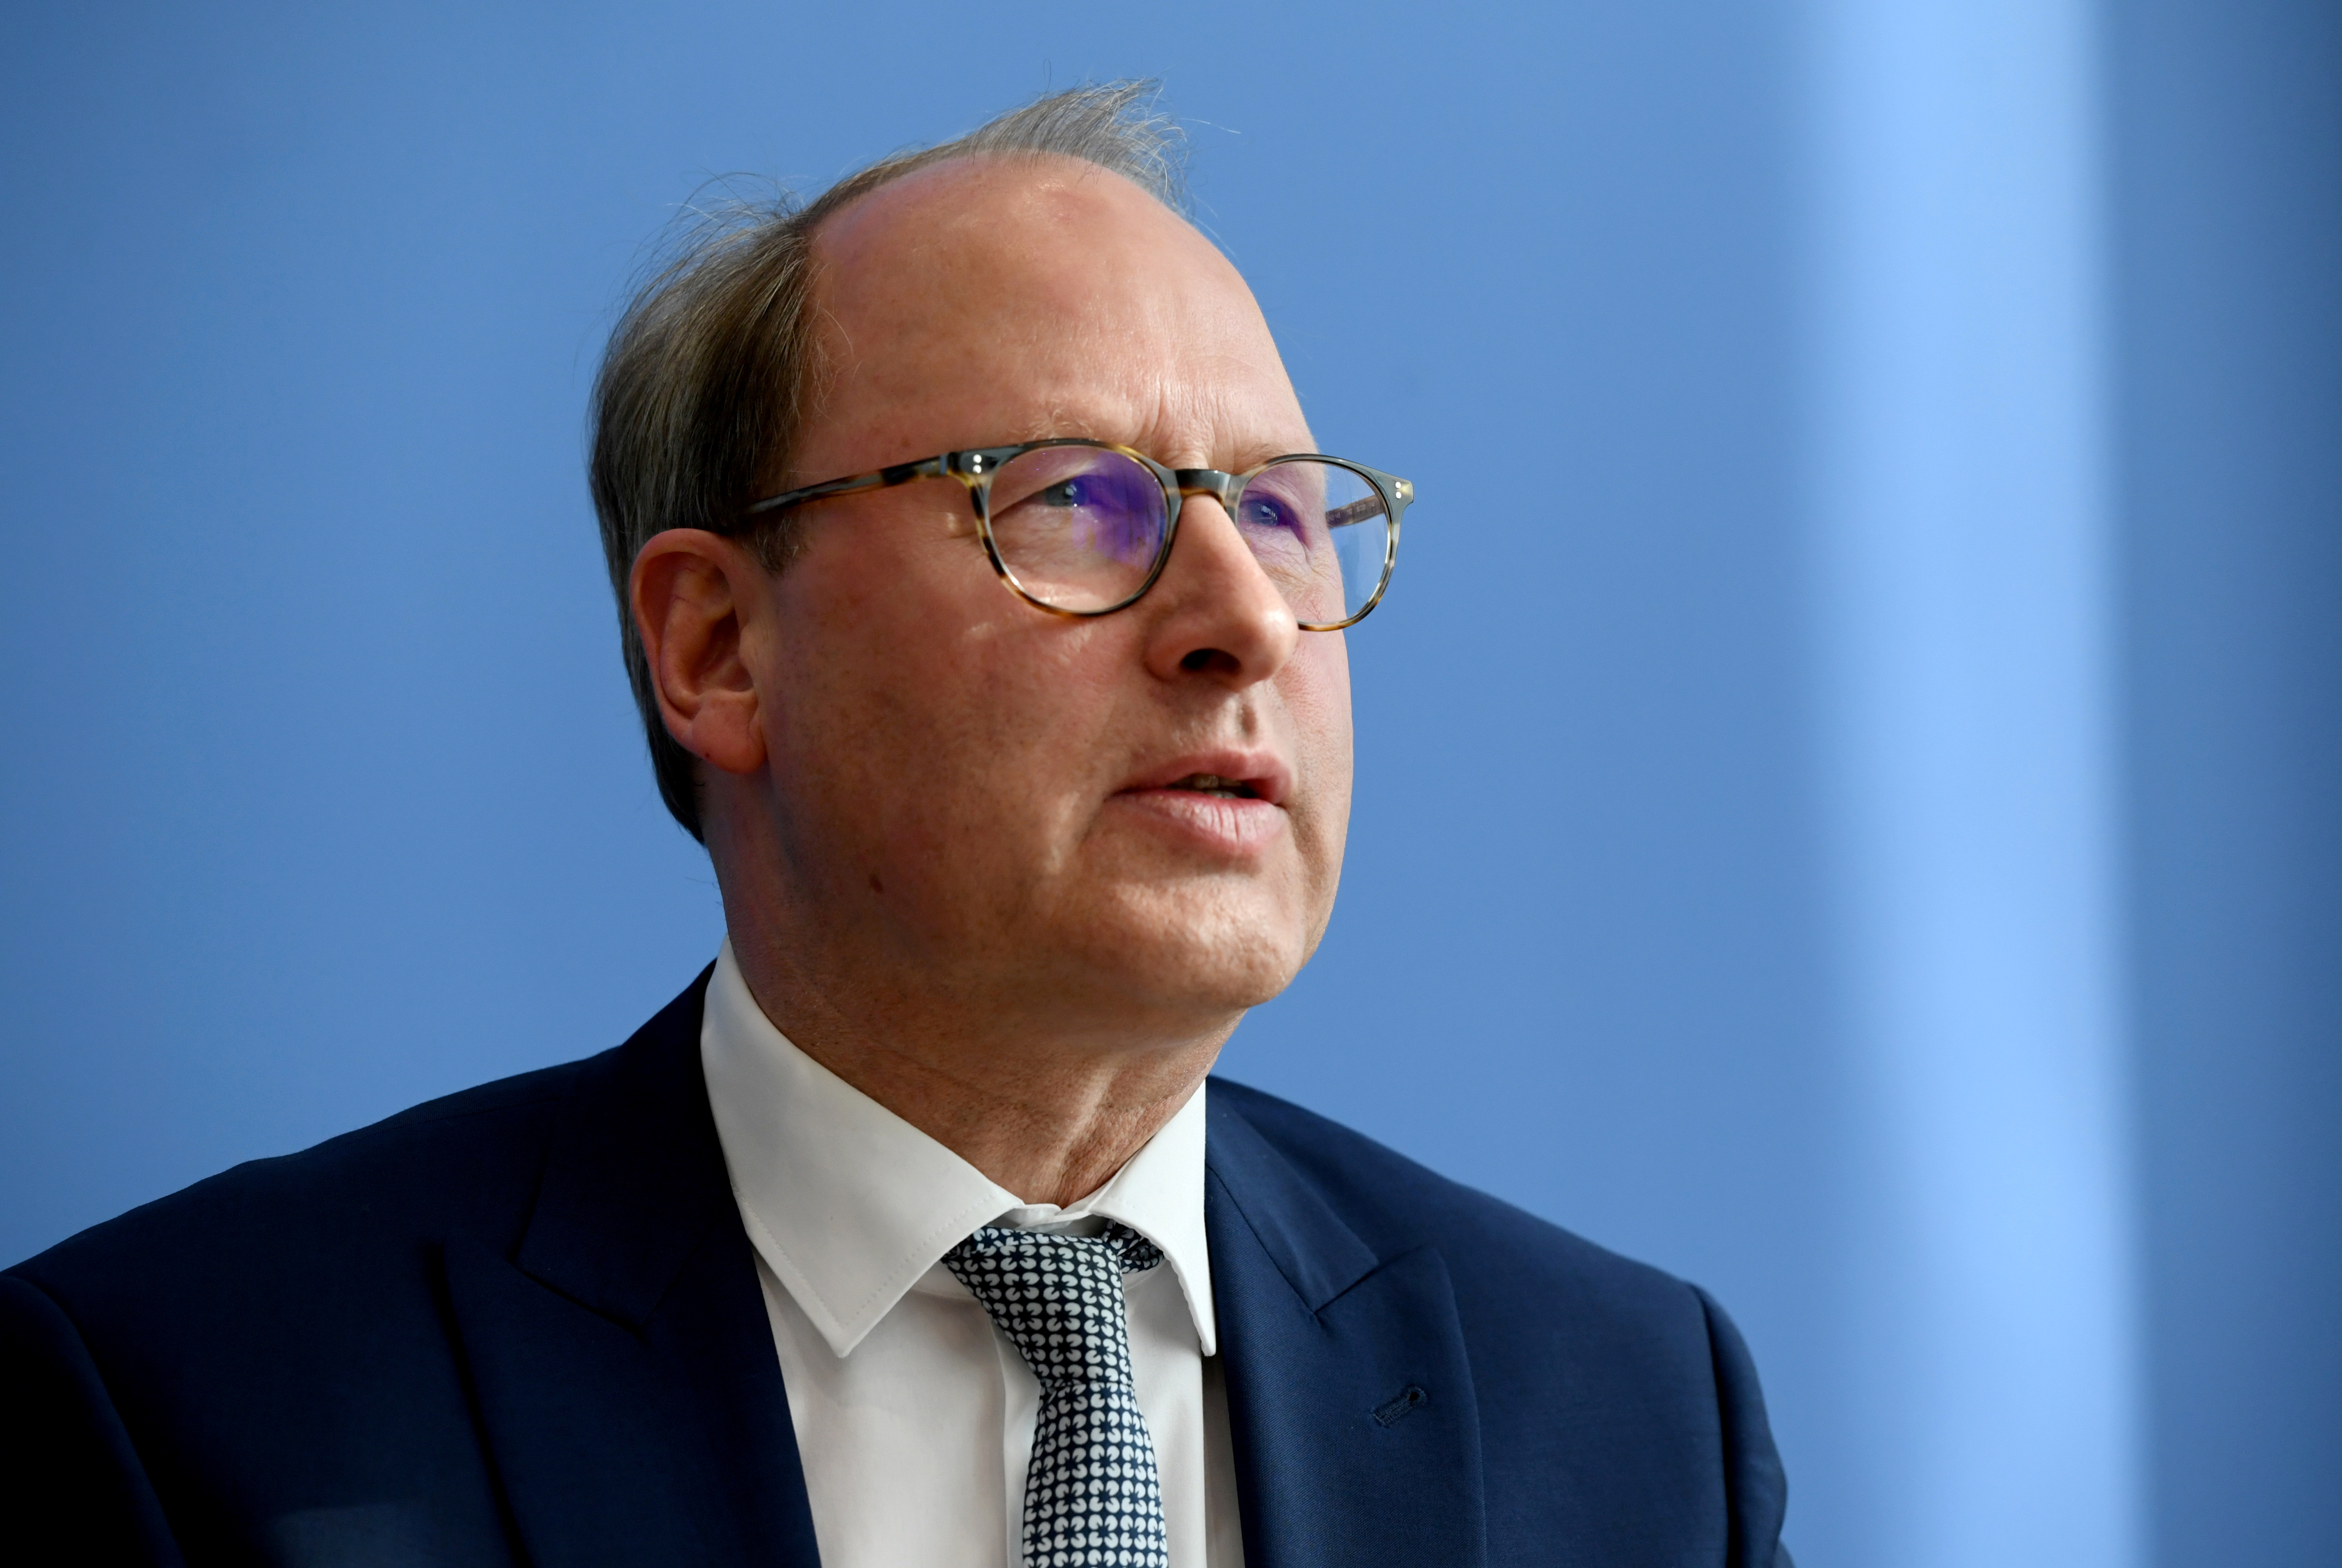 Managing Director of the Handelsverband Deutschland Stefan Genthr attends a news conference addressing the impact on supplies due to the coronavirus disease (COVID-19), in Berlin, Germany, March 17, 2020.  REUTERS/Annegret Hilse/Pool/File Photo